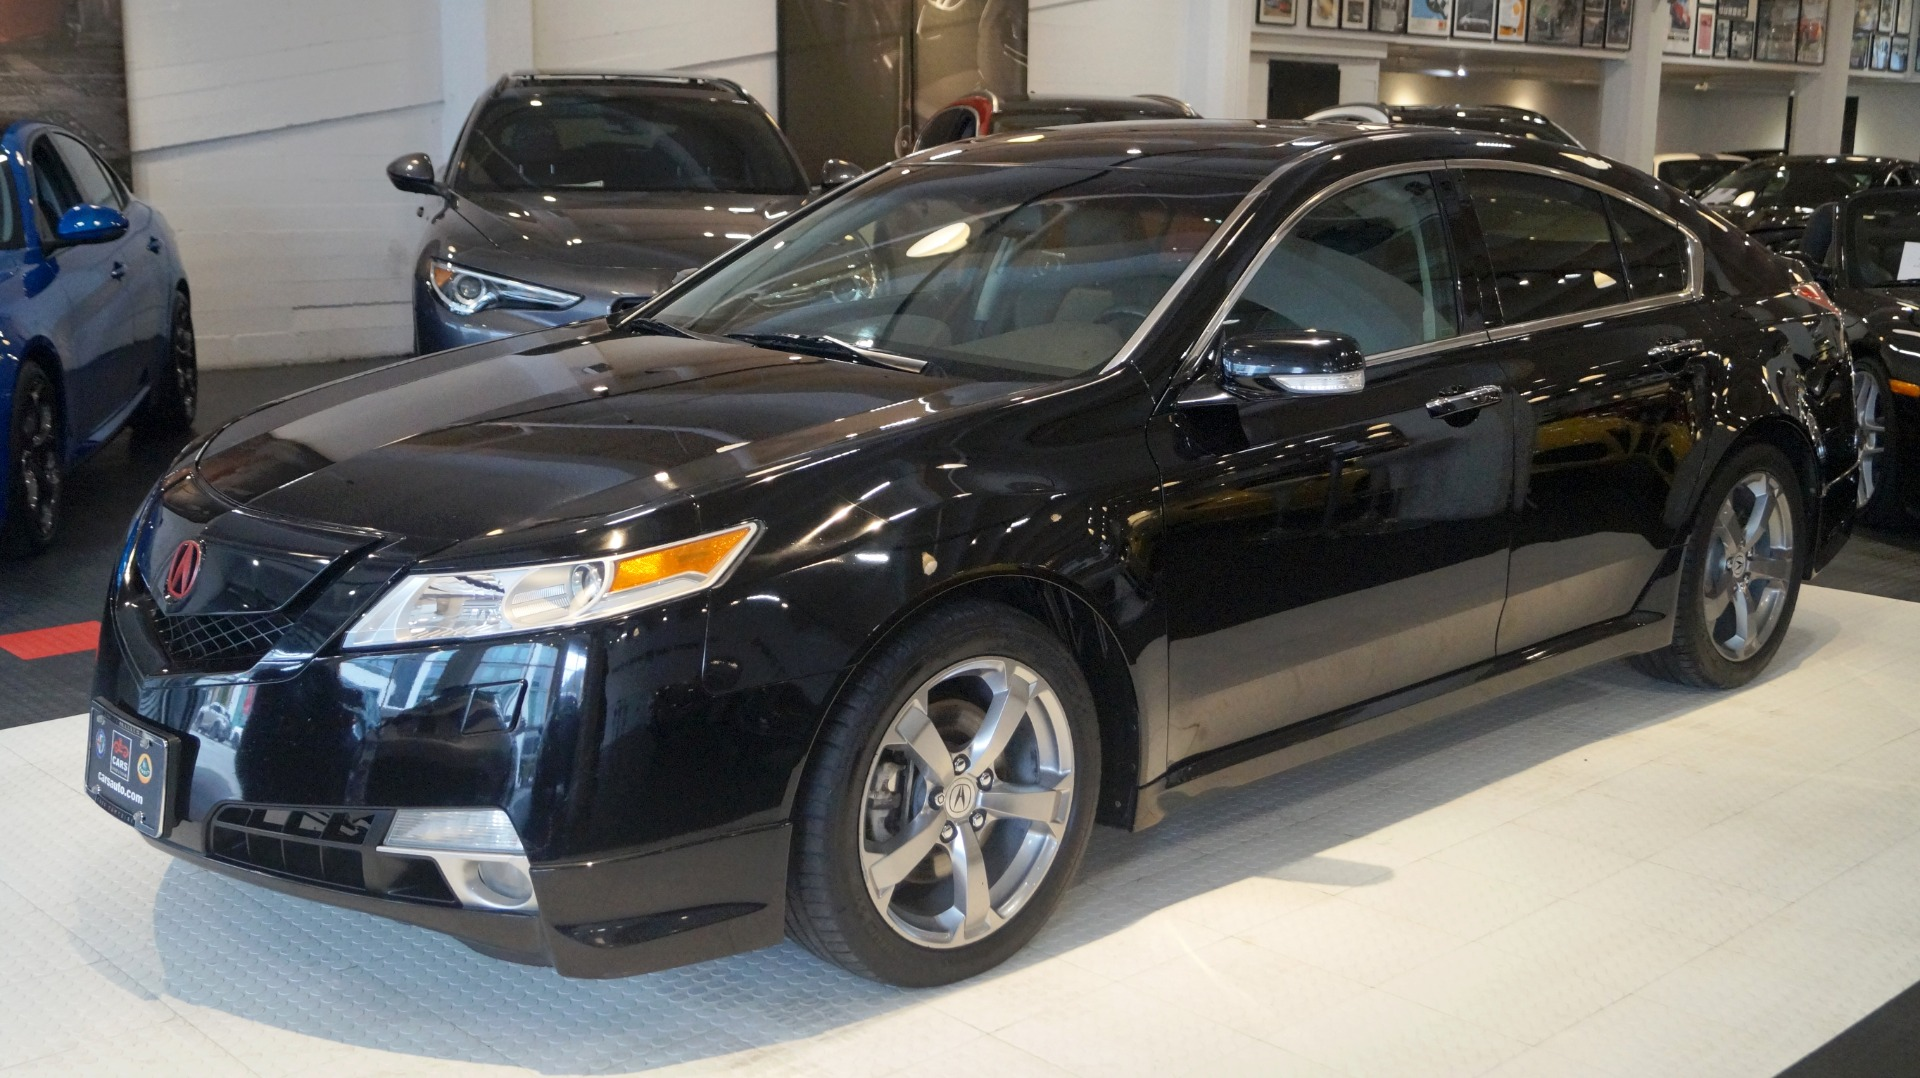 inventory car sale for ma details attleboro awd in w acura usa tech tl sh town at